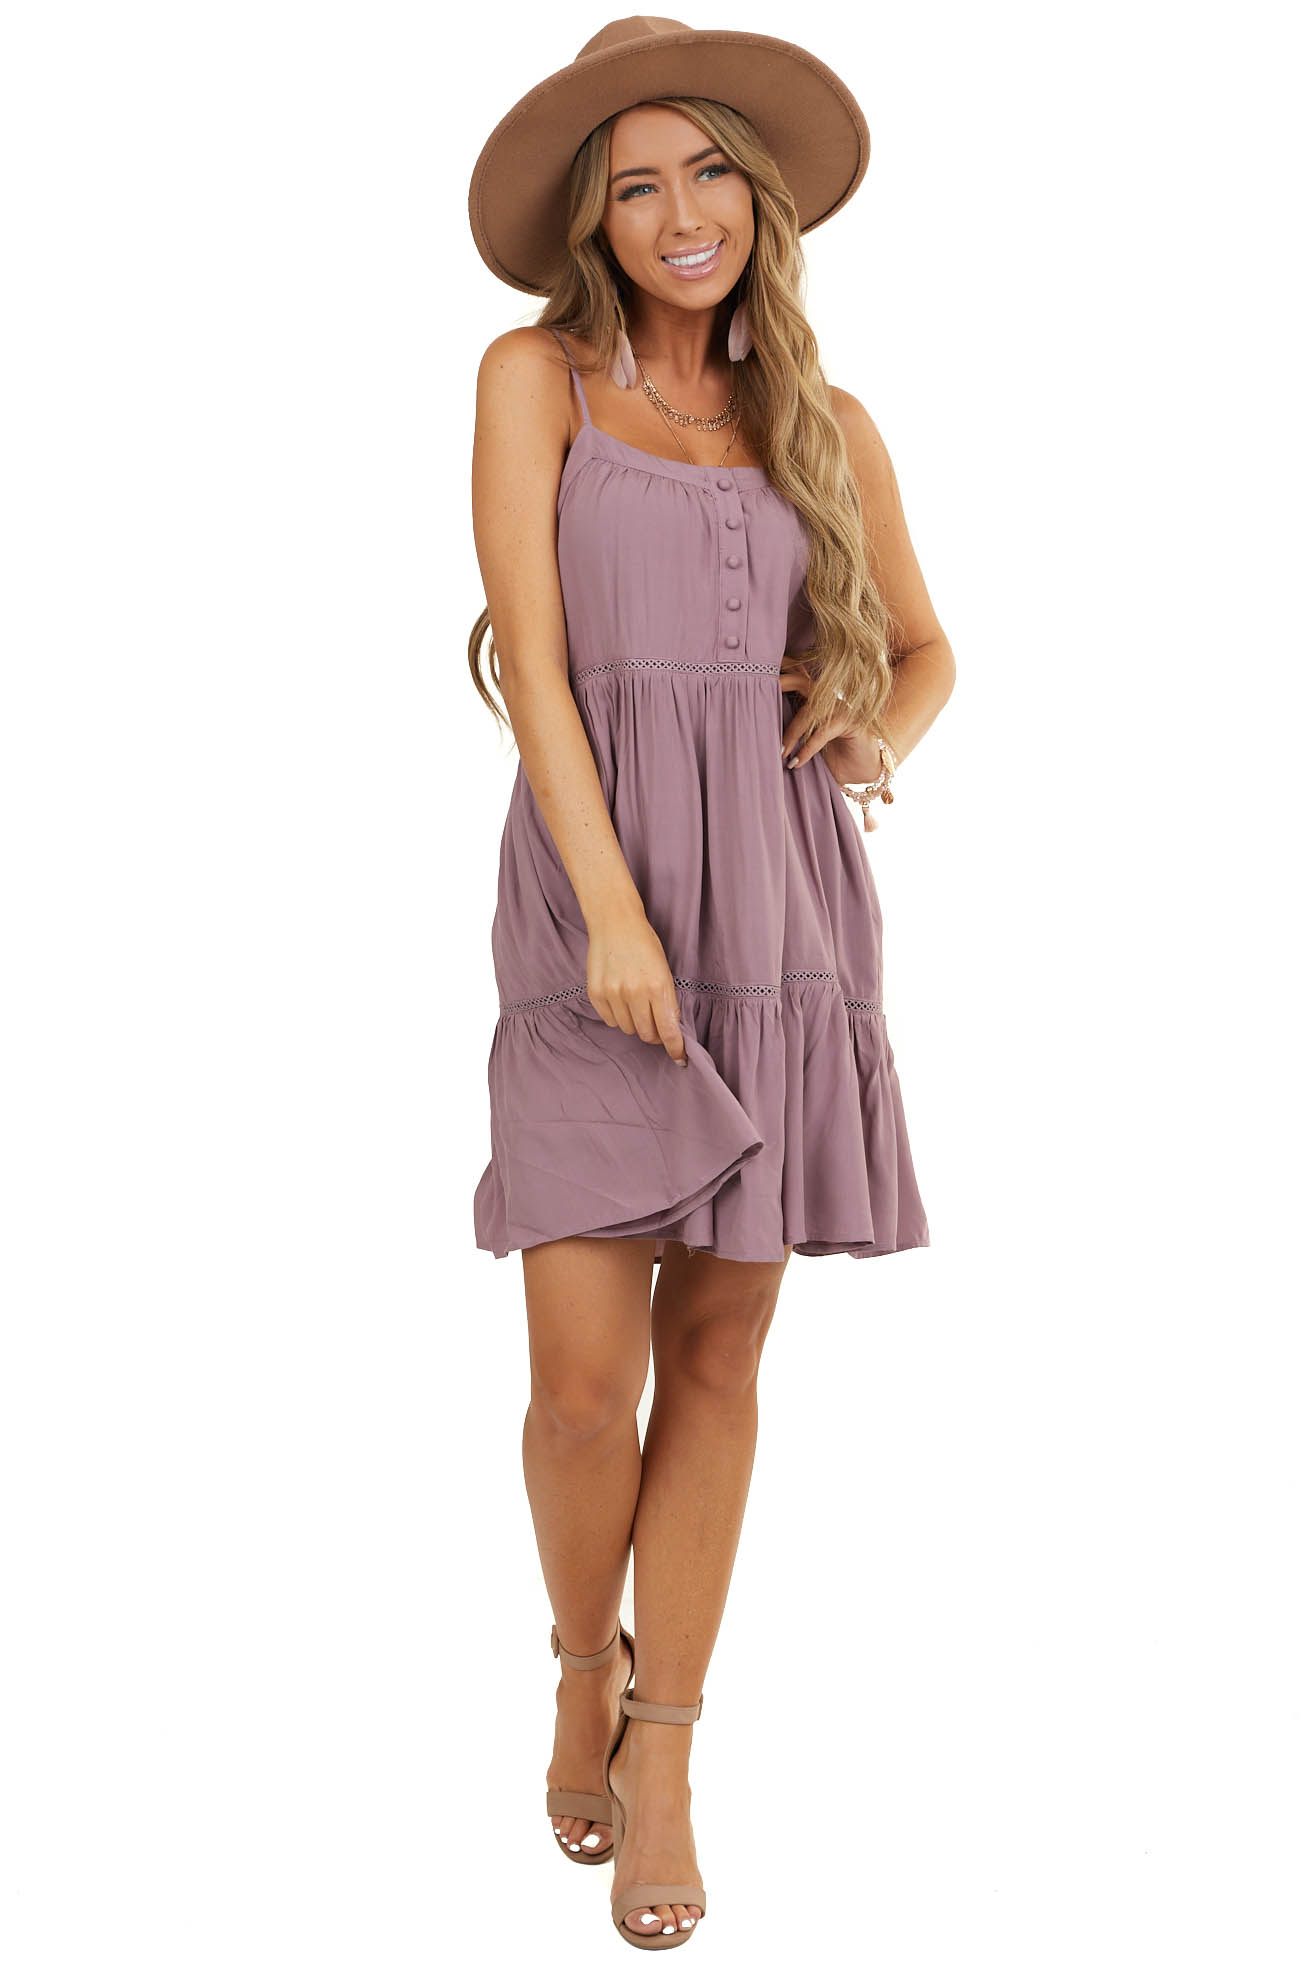 Lavender Sleeveless Dress with Lace and Button Details